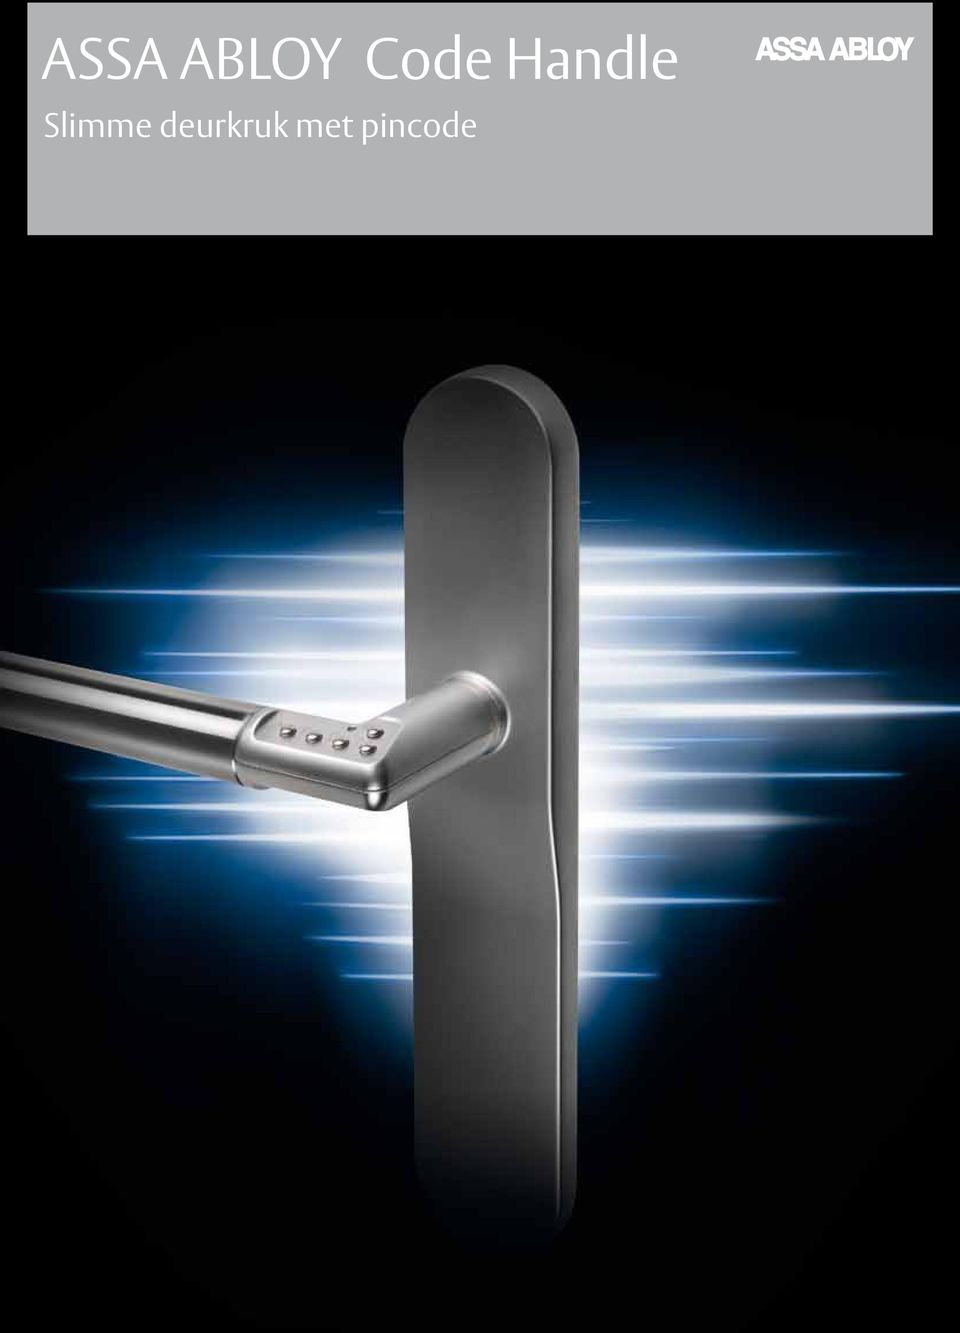 pincode ASSA ABLOY, the